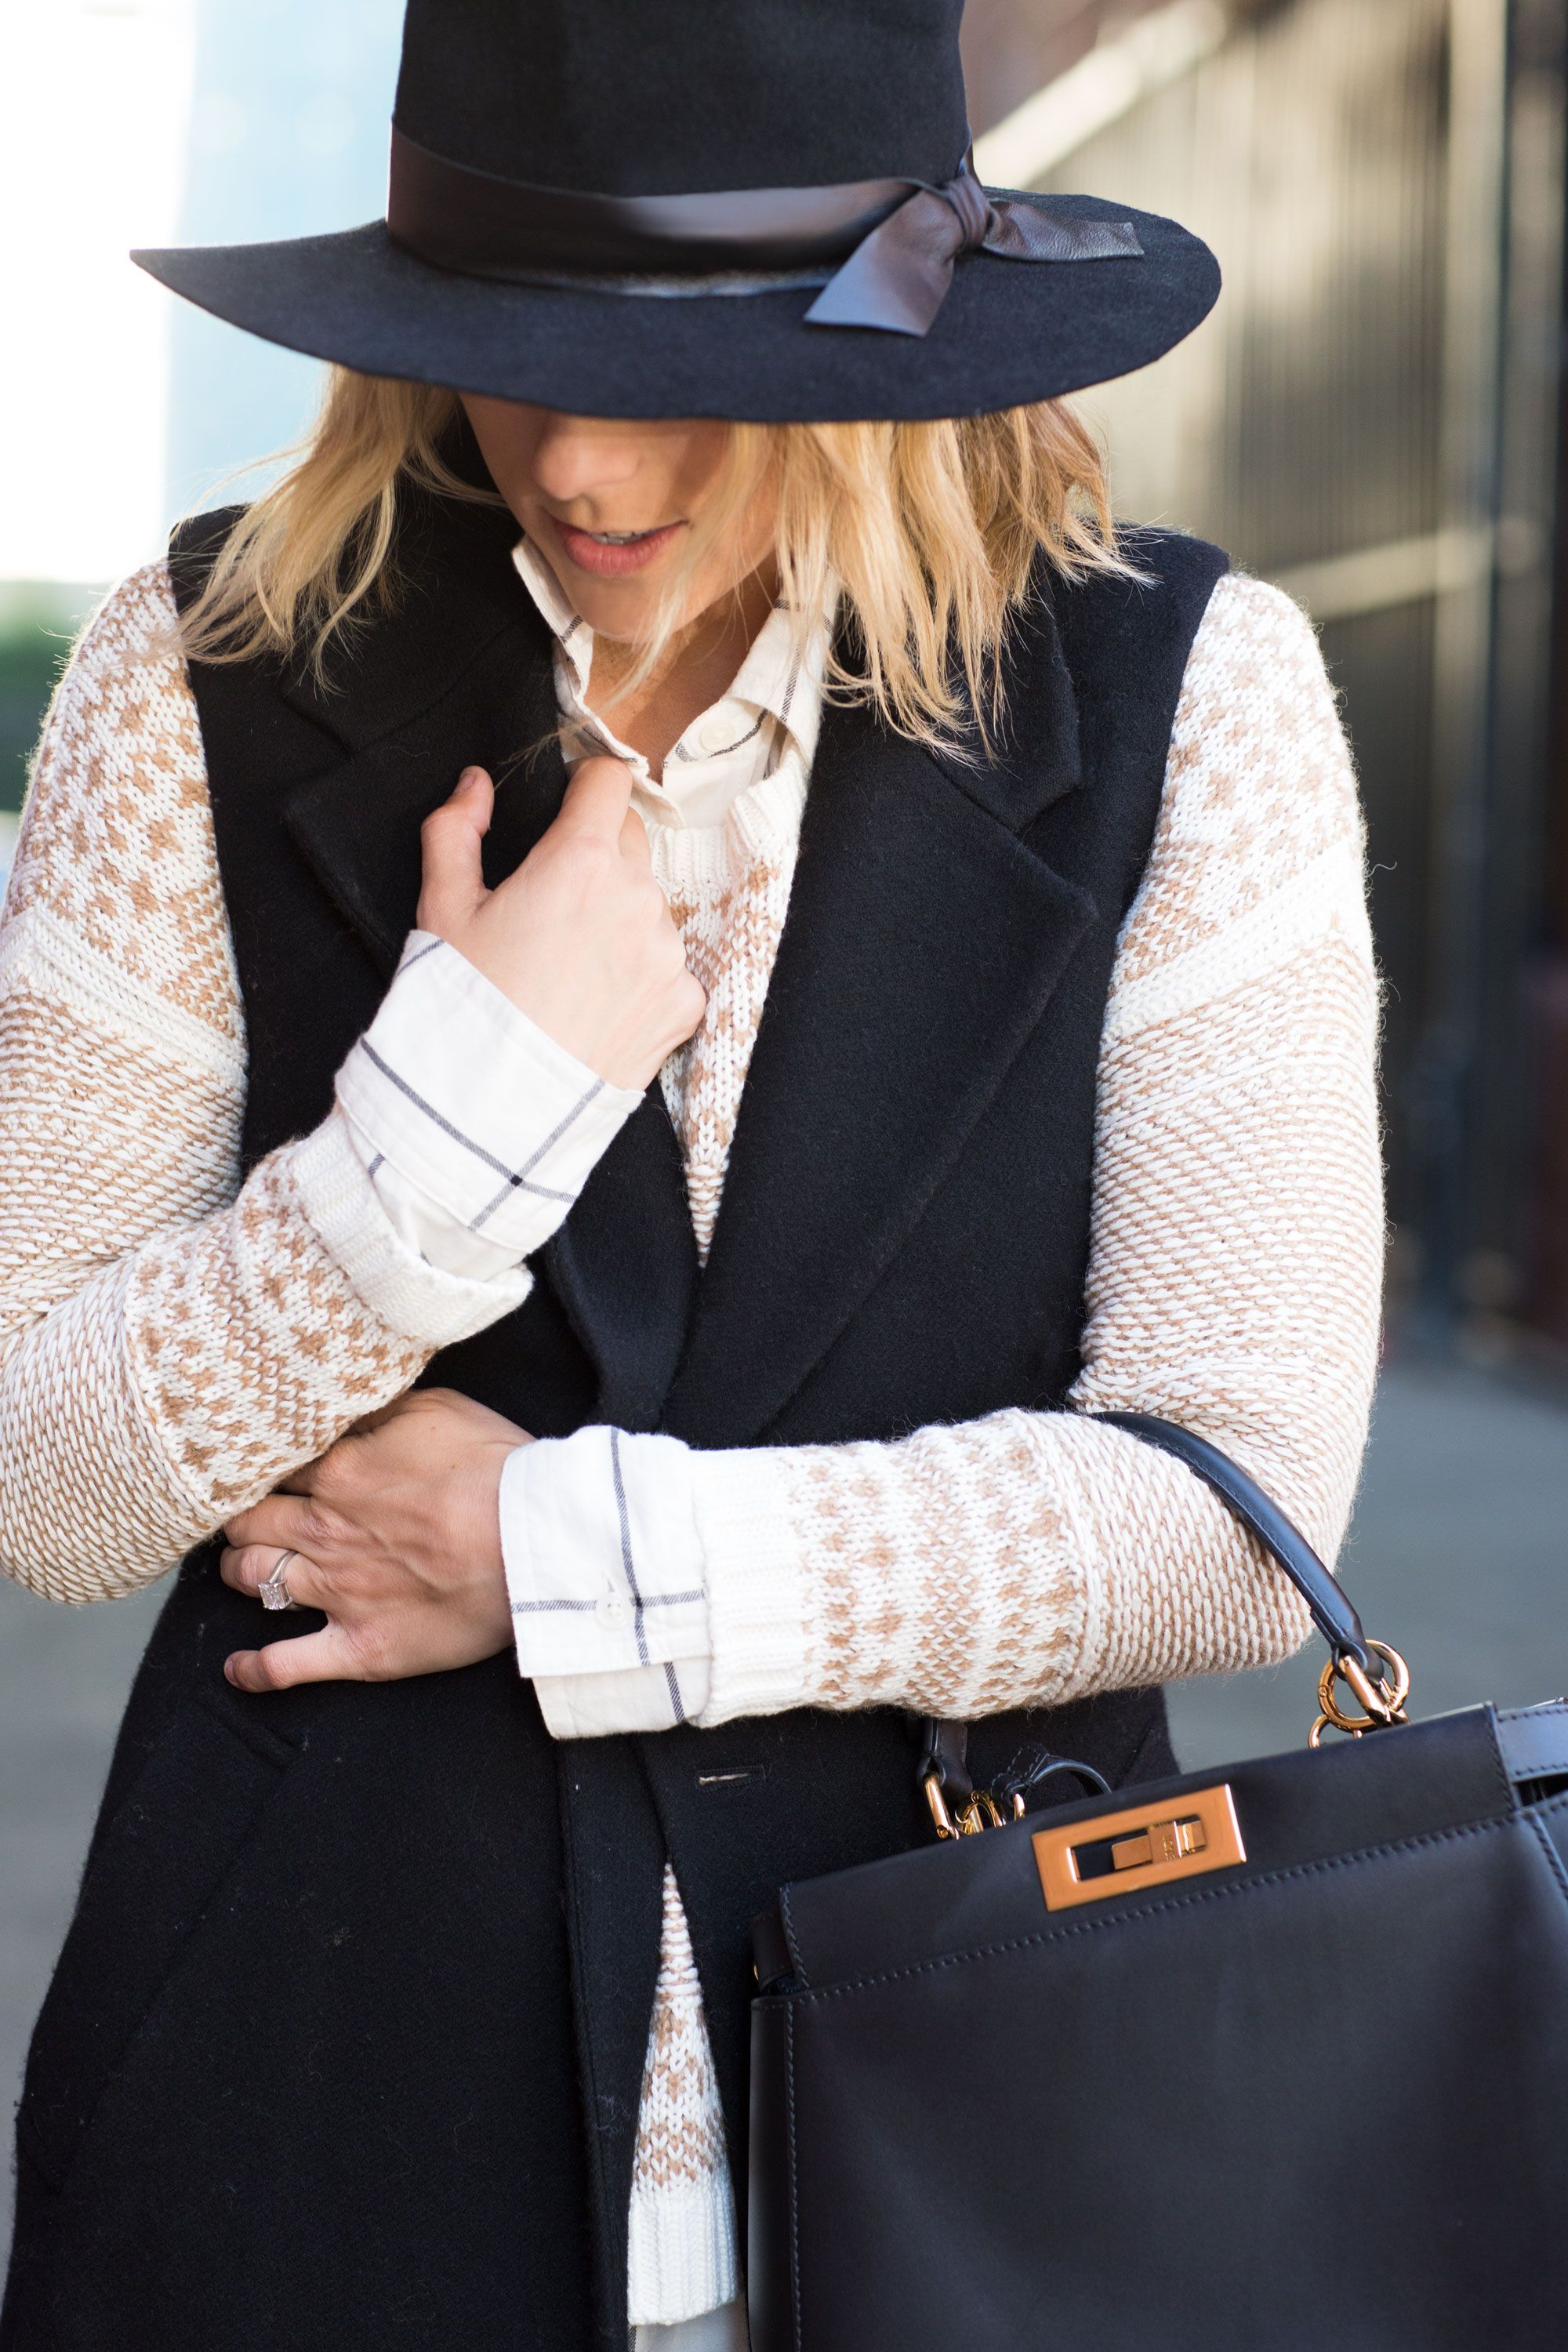 """<p>Mix patterns! Fair isle and plaid are a fresh, wearable pairing. """"Just make sure both prints are in the neutral color family,"""" Duprie says.</p><p><em>Old Navy Textured-Graphic Crew-Neck Sweater, $39.94, <a href=""""http://oldnavy.gap.com/browse/product.do?cid=60790&tid=onsm004538&vid=1&pid=141245022"""" target=""""_blank"""">oldnavy.com</a>; Old Navy Boyfriend Flannel Shirt in Windowpane, $29.94, <a href=""""http://oldnavy.gap.com/browse/product.do?cid=1027152&tid=onsm004538&vid=1&pid=715241002"""" target=""""_blank"""">oldnavy.com</a></em></p>"""